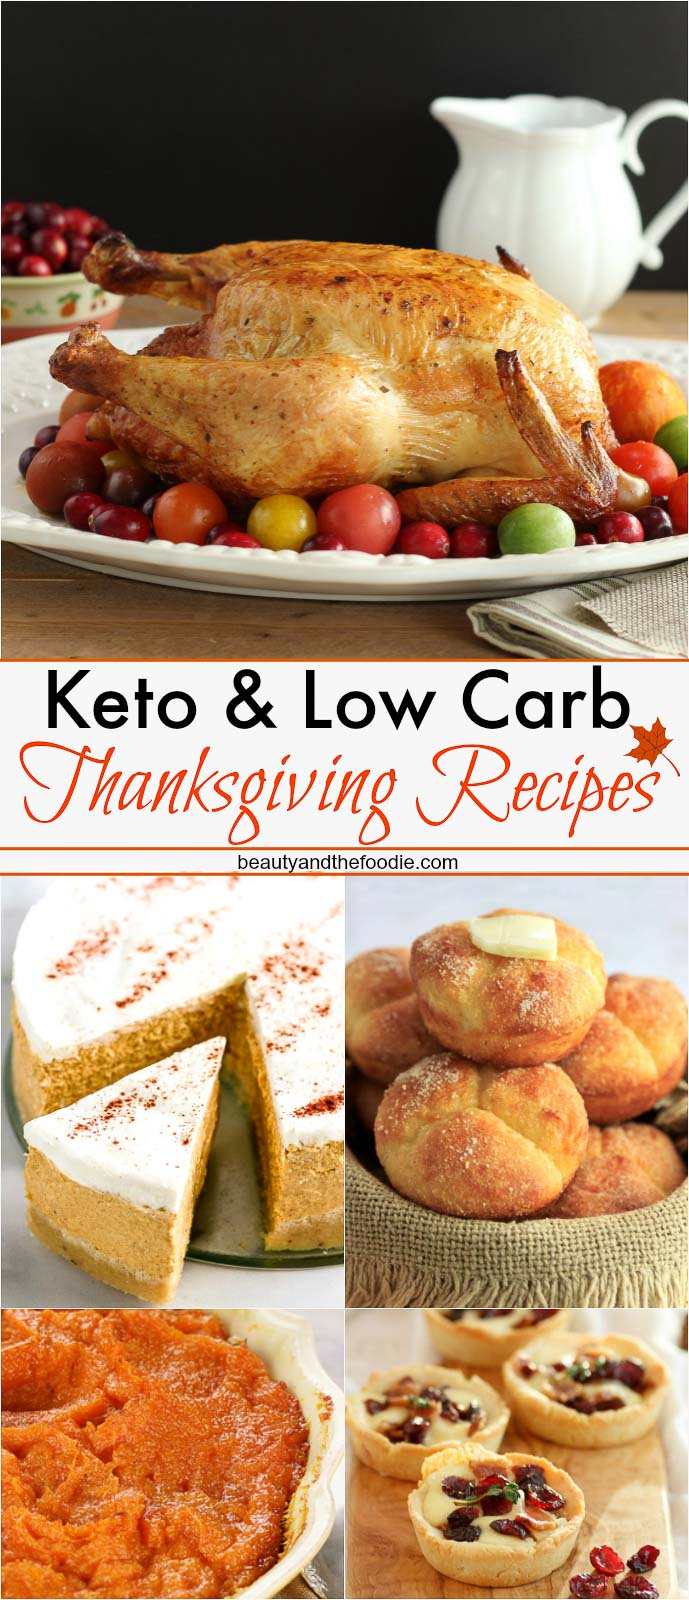 Grain Free, Low Carb, Keto, Thanksgiving Recipes